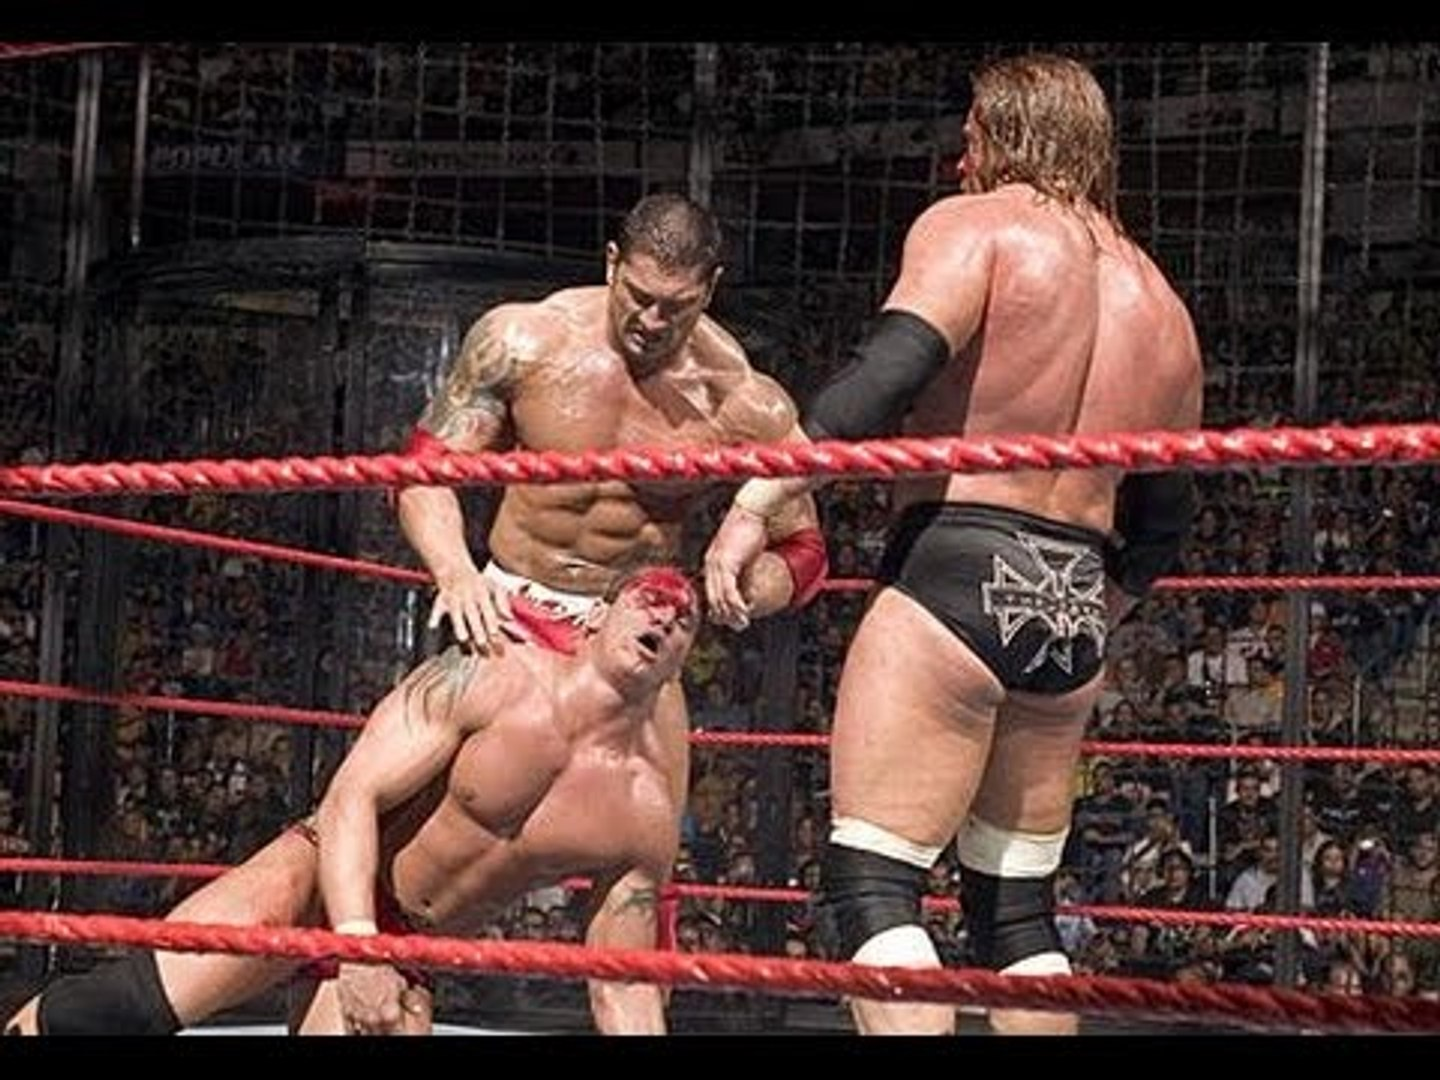 official wwe Batista vs Triple H vs Shane McMahon vs Randy Orton full match HHH Almost died wwe 2016 - video Dailymotion